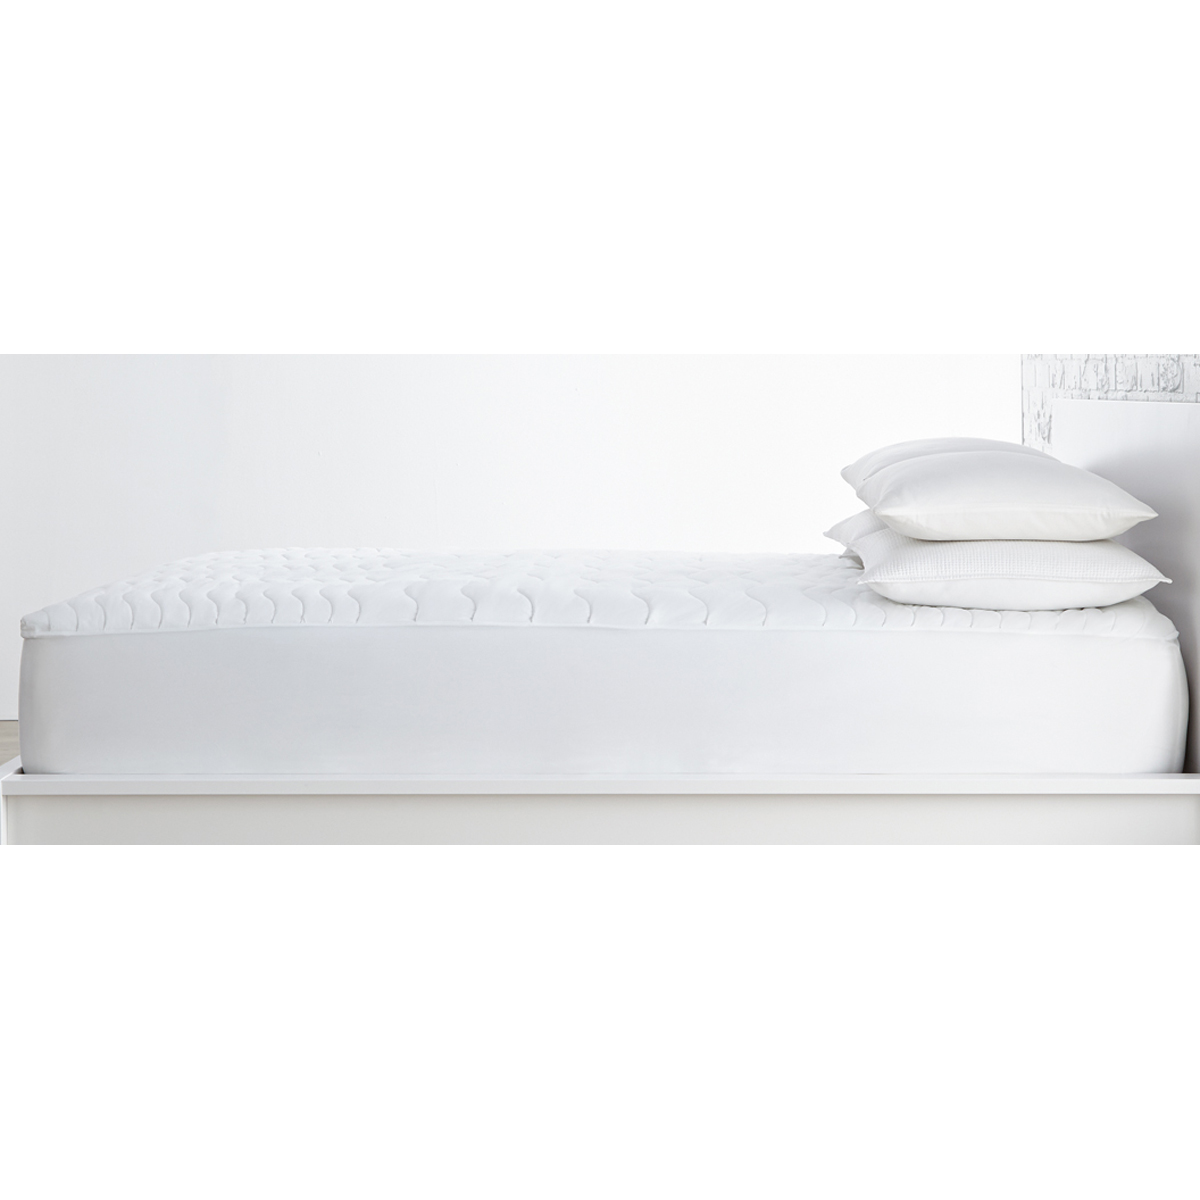 Sunbeam health™ RESTORE™ Heated Mattress Pad, King Size